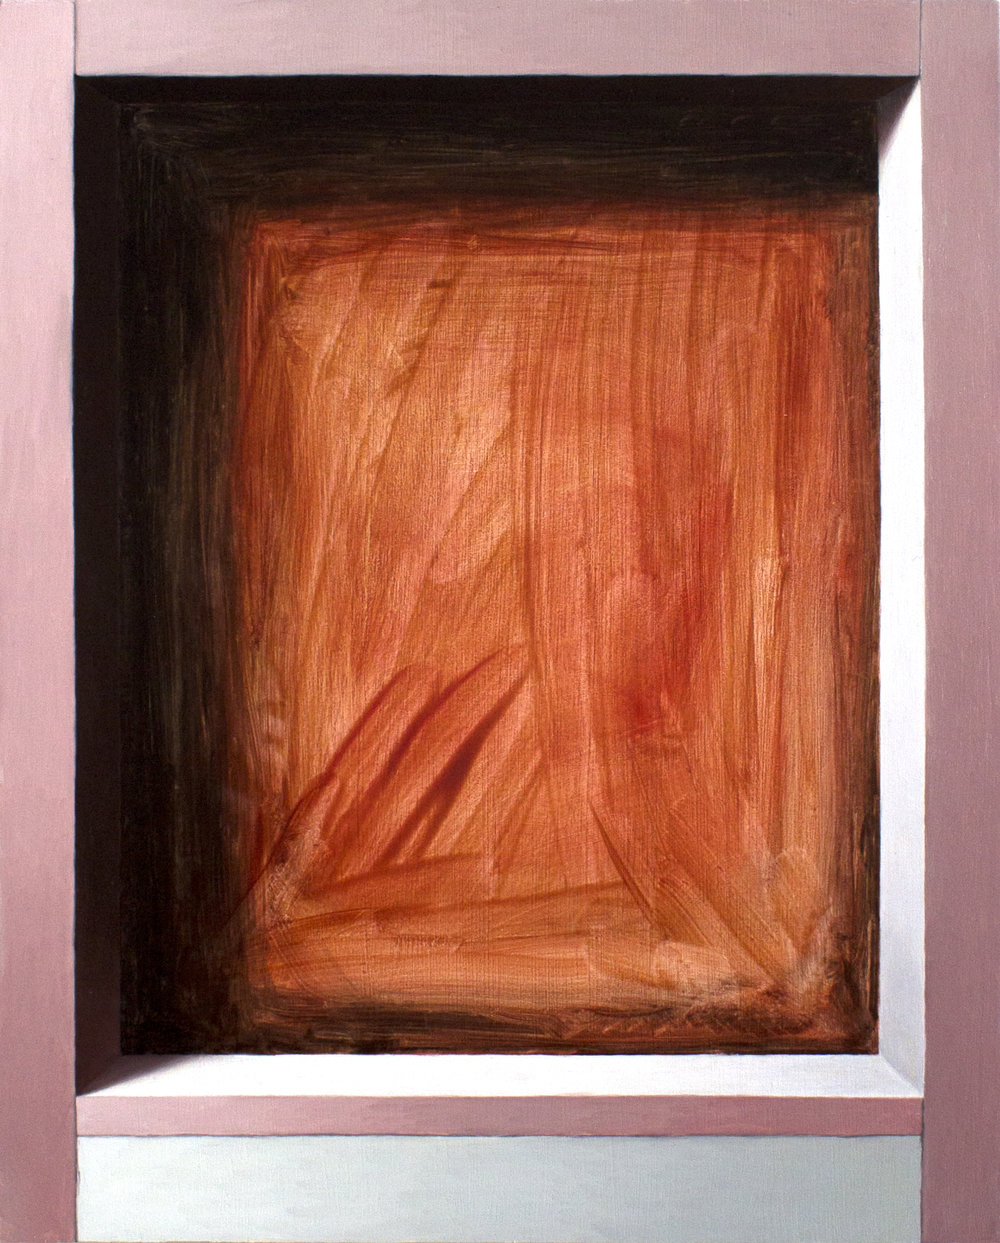 Exposed Interior No. 2   2017  Oil on wood panel  10 x 8 in